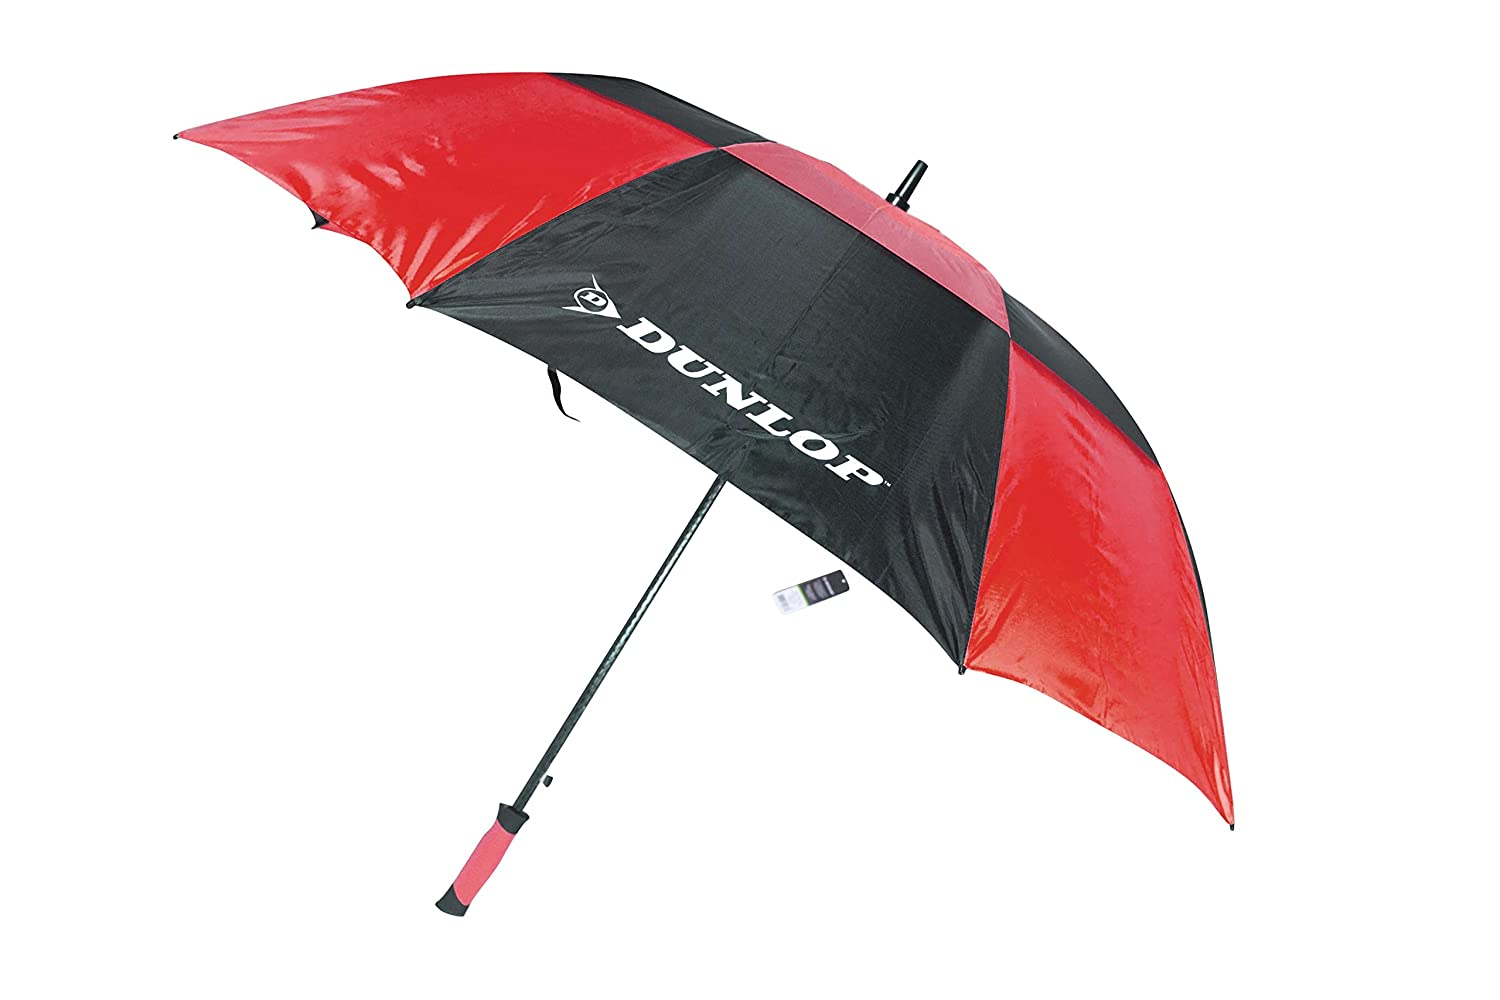 Amazon.com : Dunlop 60 Inch Double Canopy Golf Umbrella, Colors May Vary, 2-Pack : Sports & Outdoors